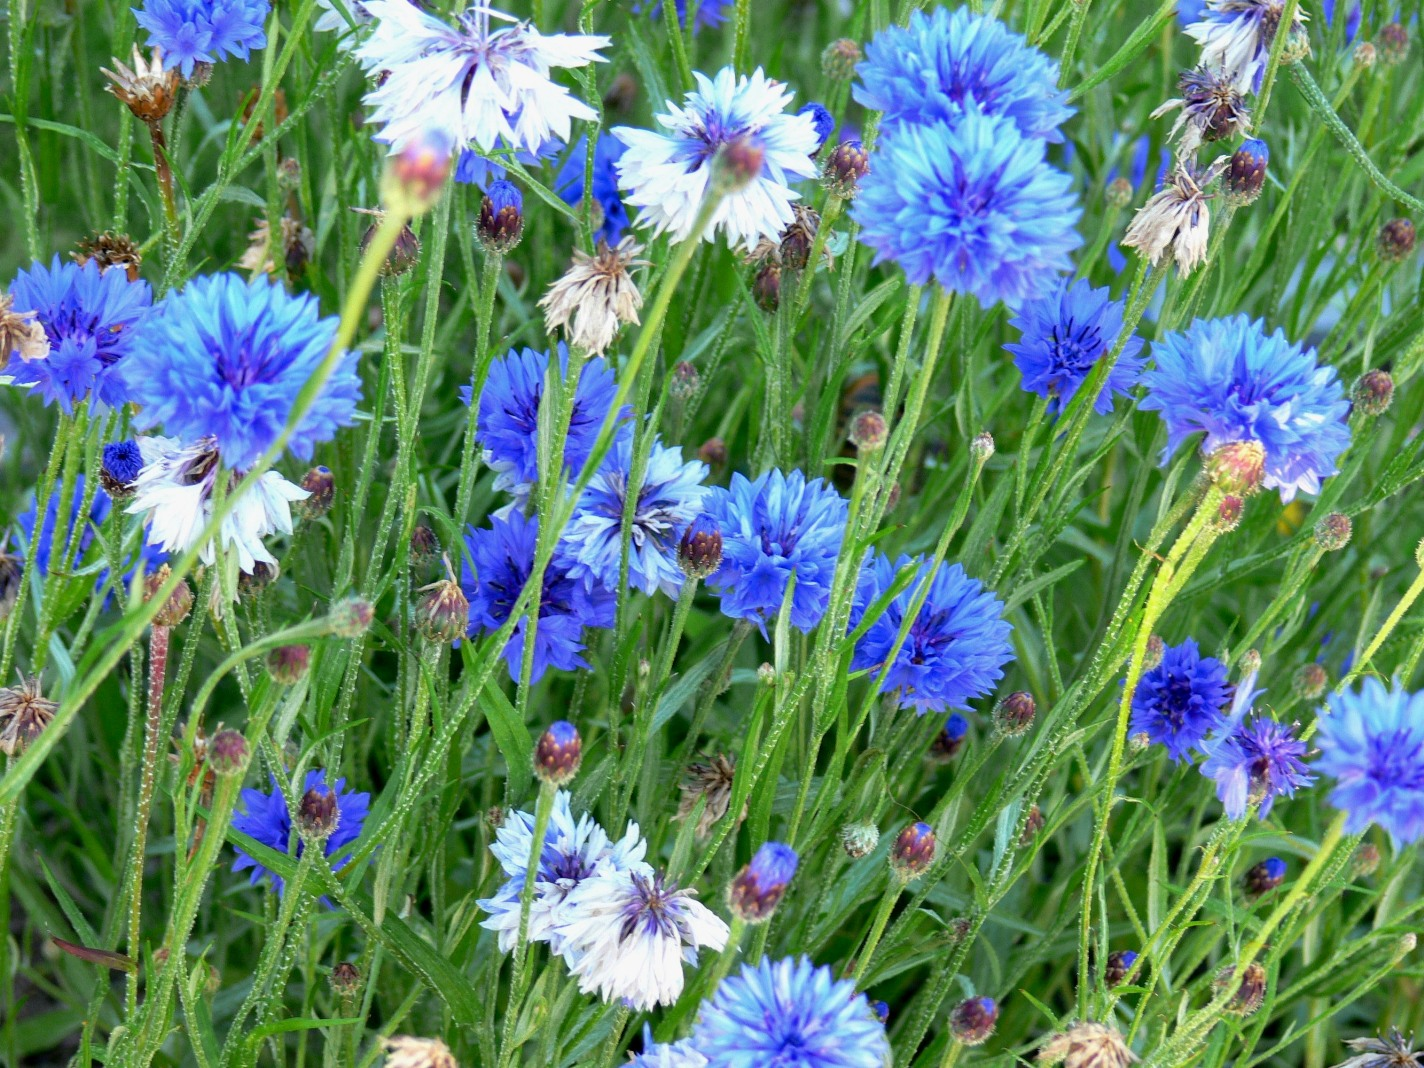 A Complete Guide on Growing Cornflower for Perfect Perennial Blooms